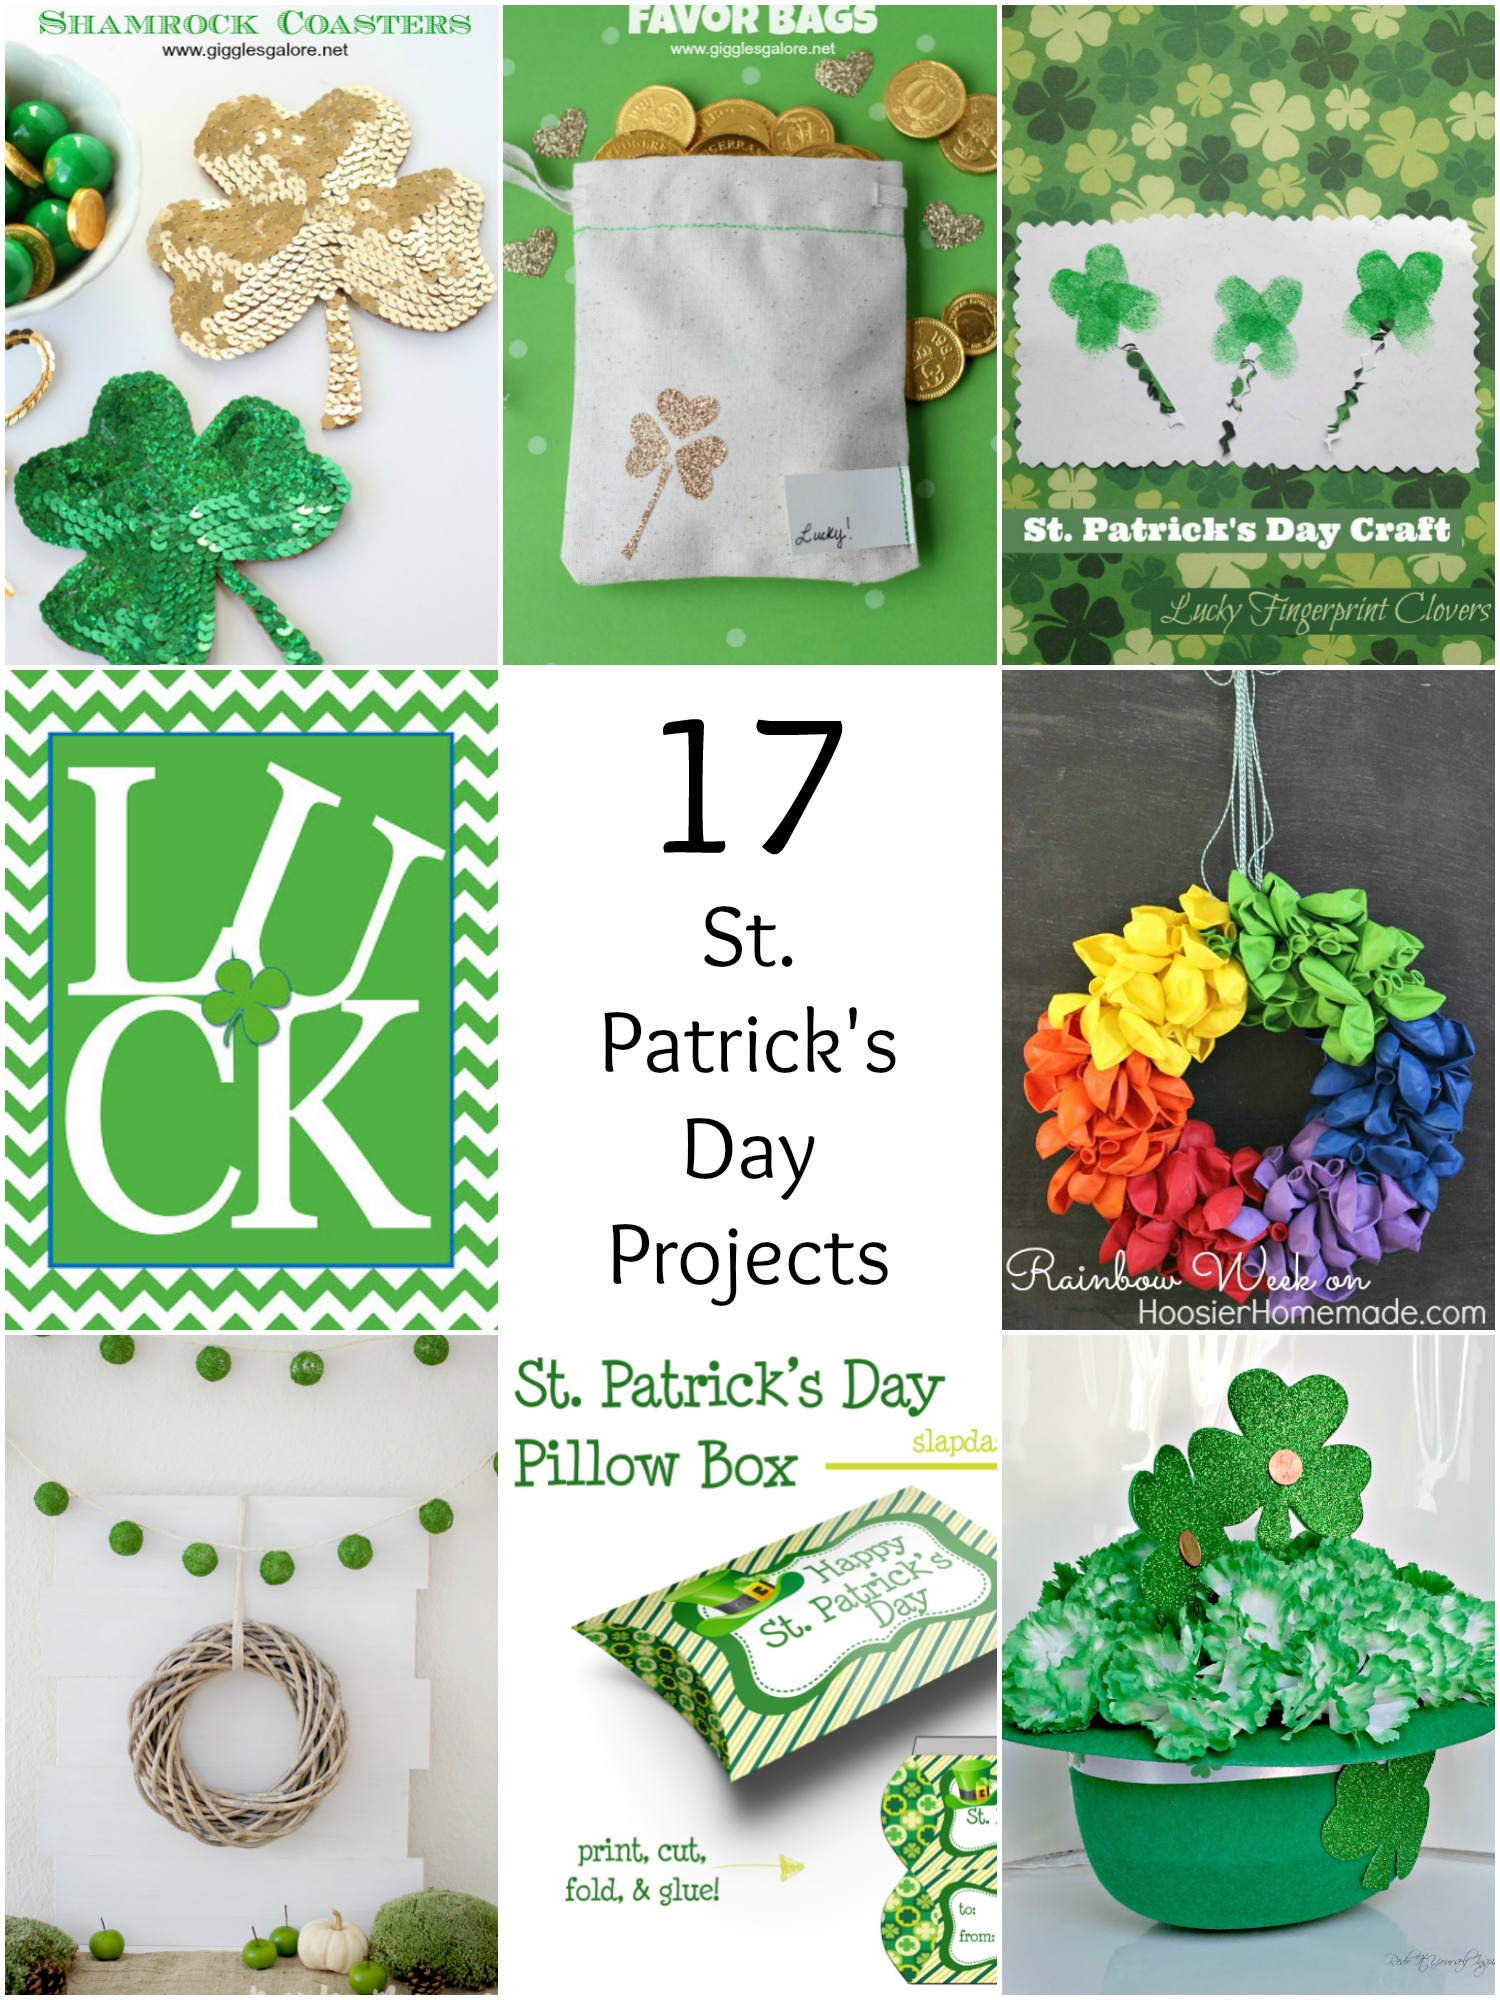 17 St. Patrick's Day Projects